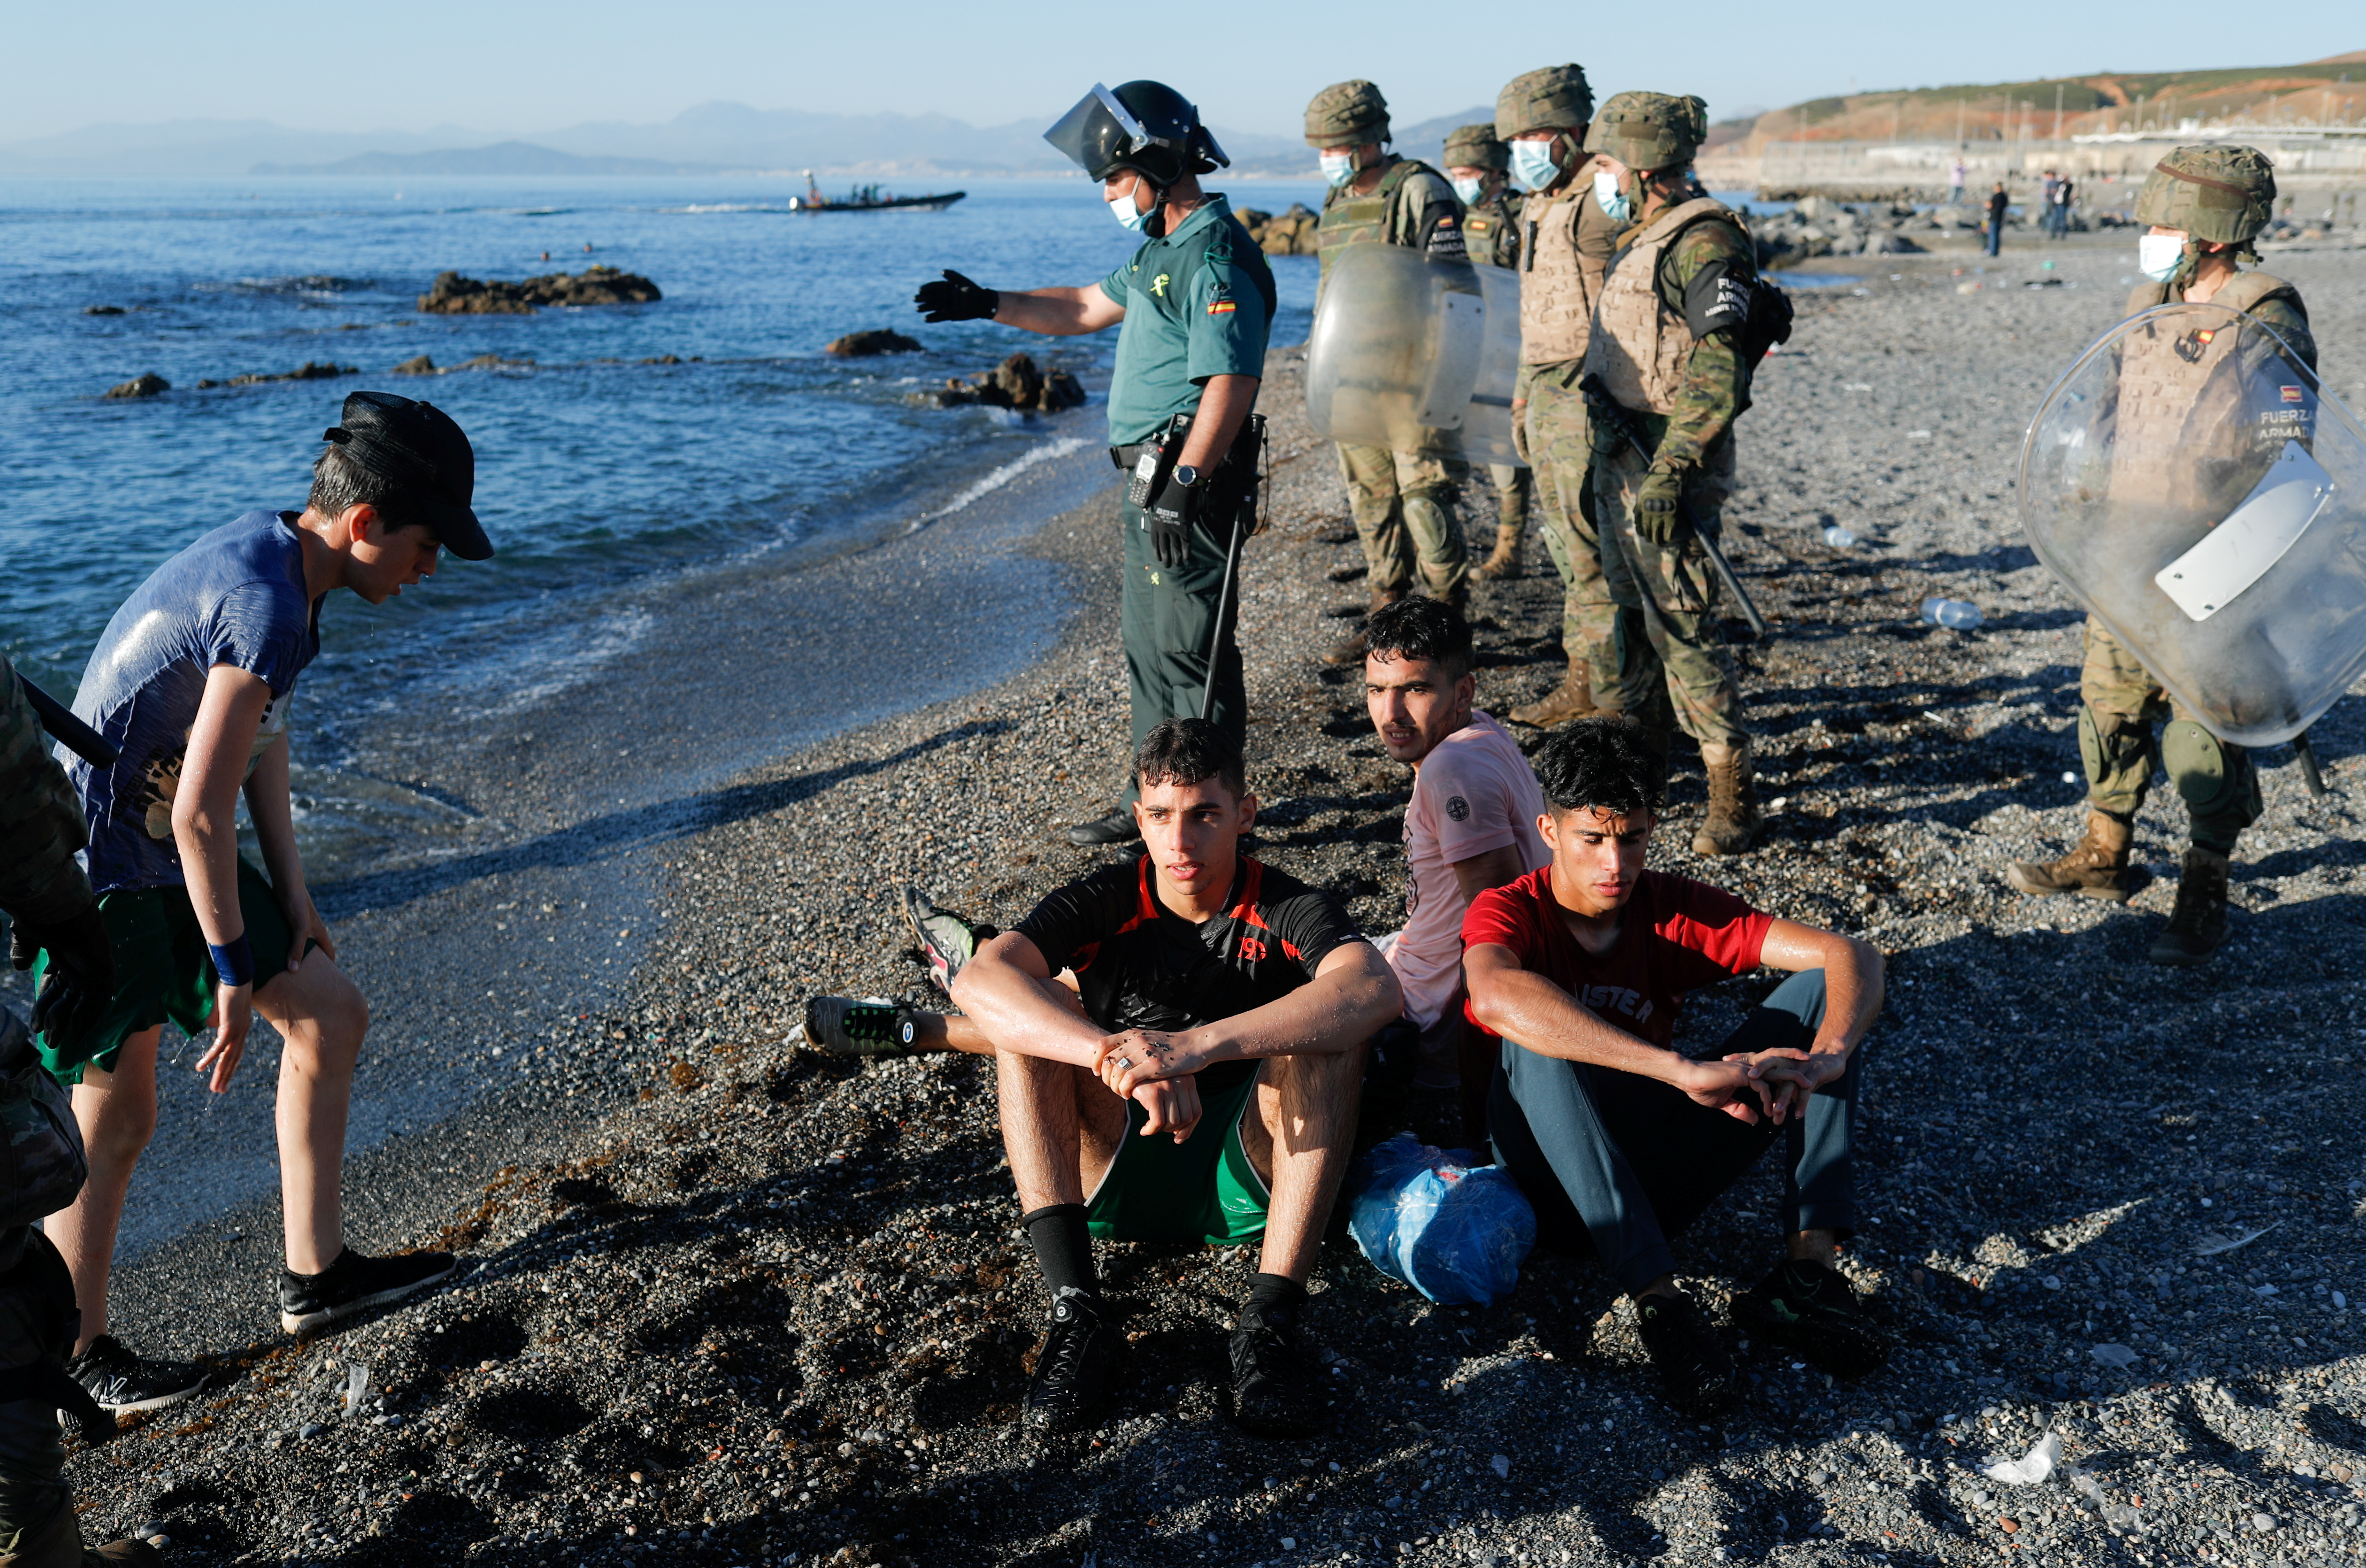 Spanish soldiers stand guard as Moroccan citizens sit at El Tarajal beach, near the fence between the Spanish-Moroccan border, after thousands of migrants swam across the border, in Ceuta, Spain, May 19, 2021. REUTERS/Jon Nazca